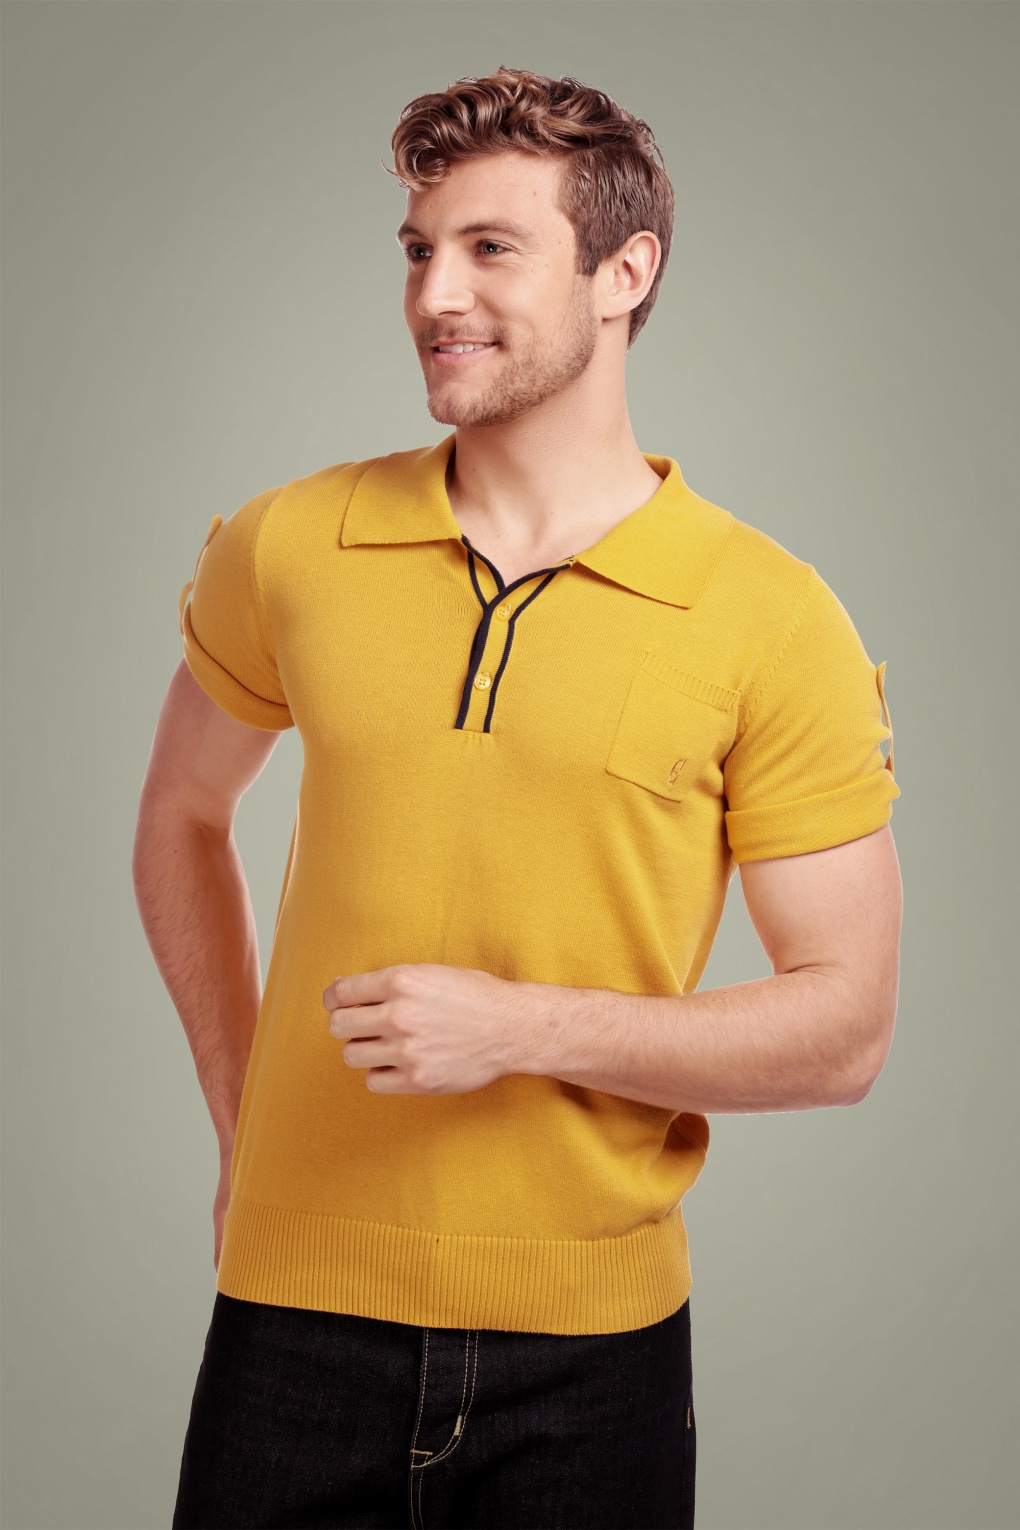 1950s Men's Shirt Styles – Dress Shirts to Casual Pullovers 50s Jorge Plain Knitted Polo Shirt in Yellow £40.00 AT vintagedancer.com